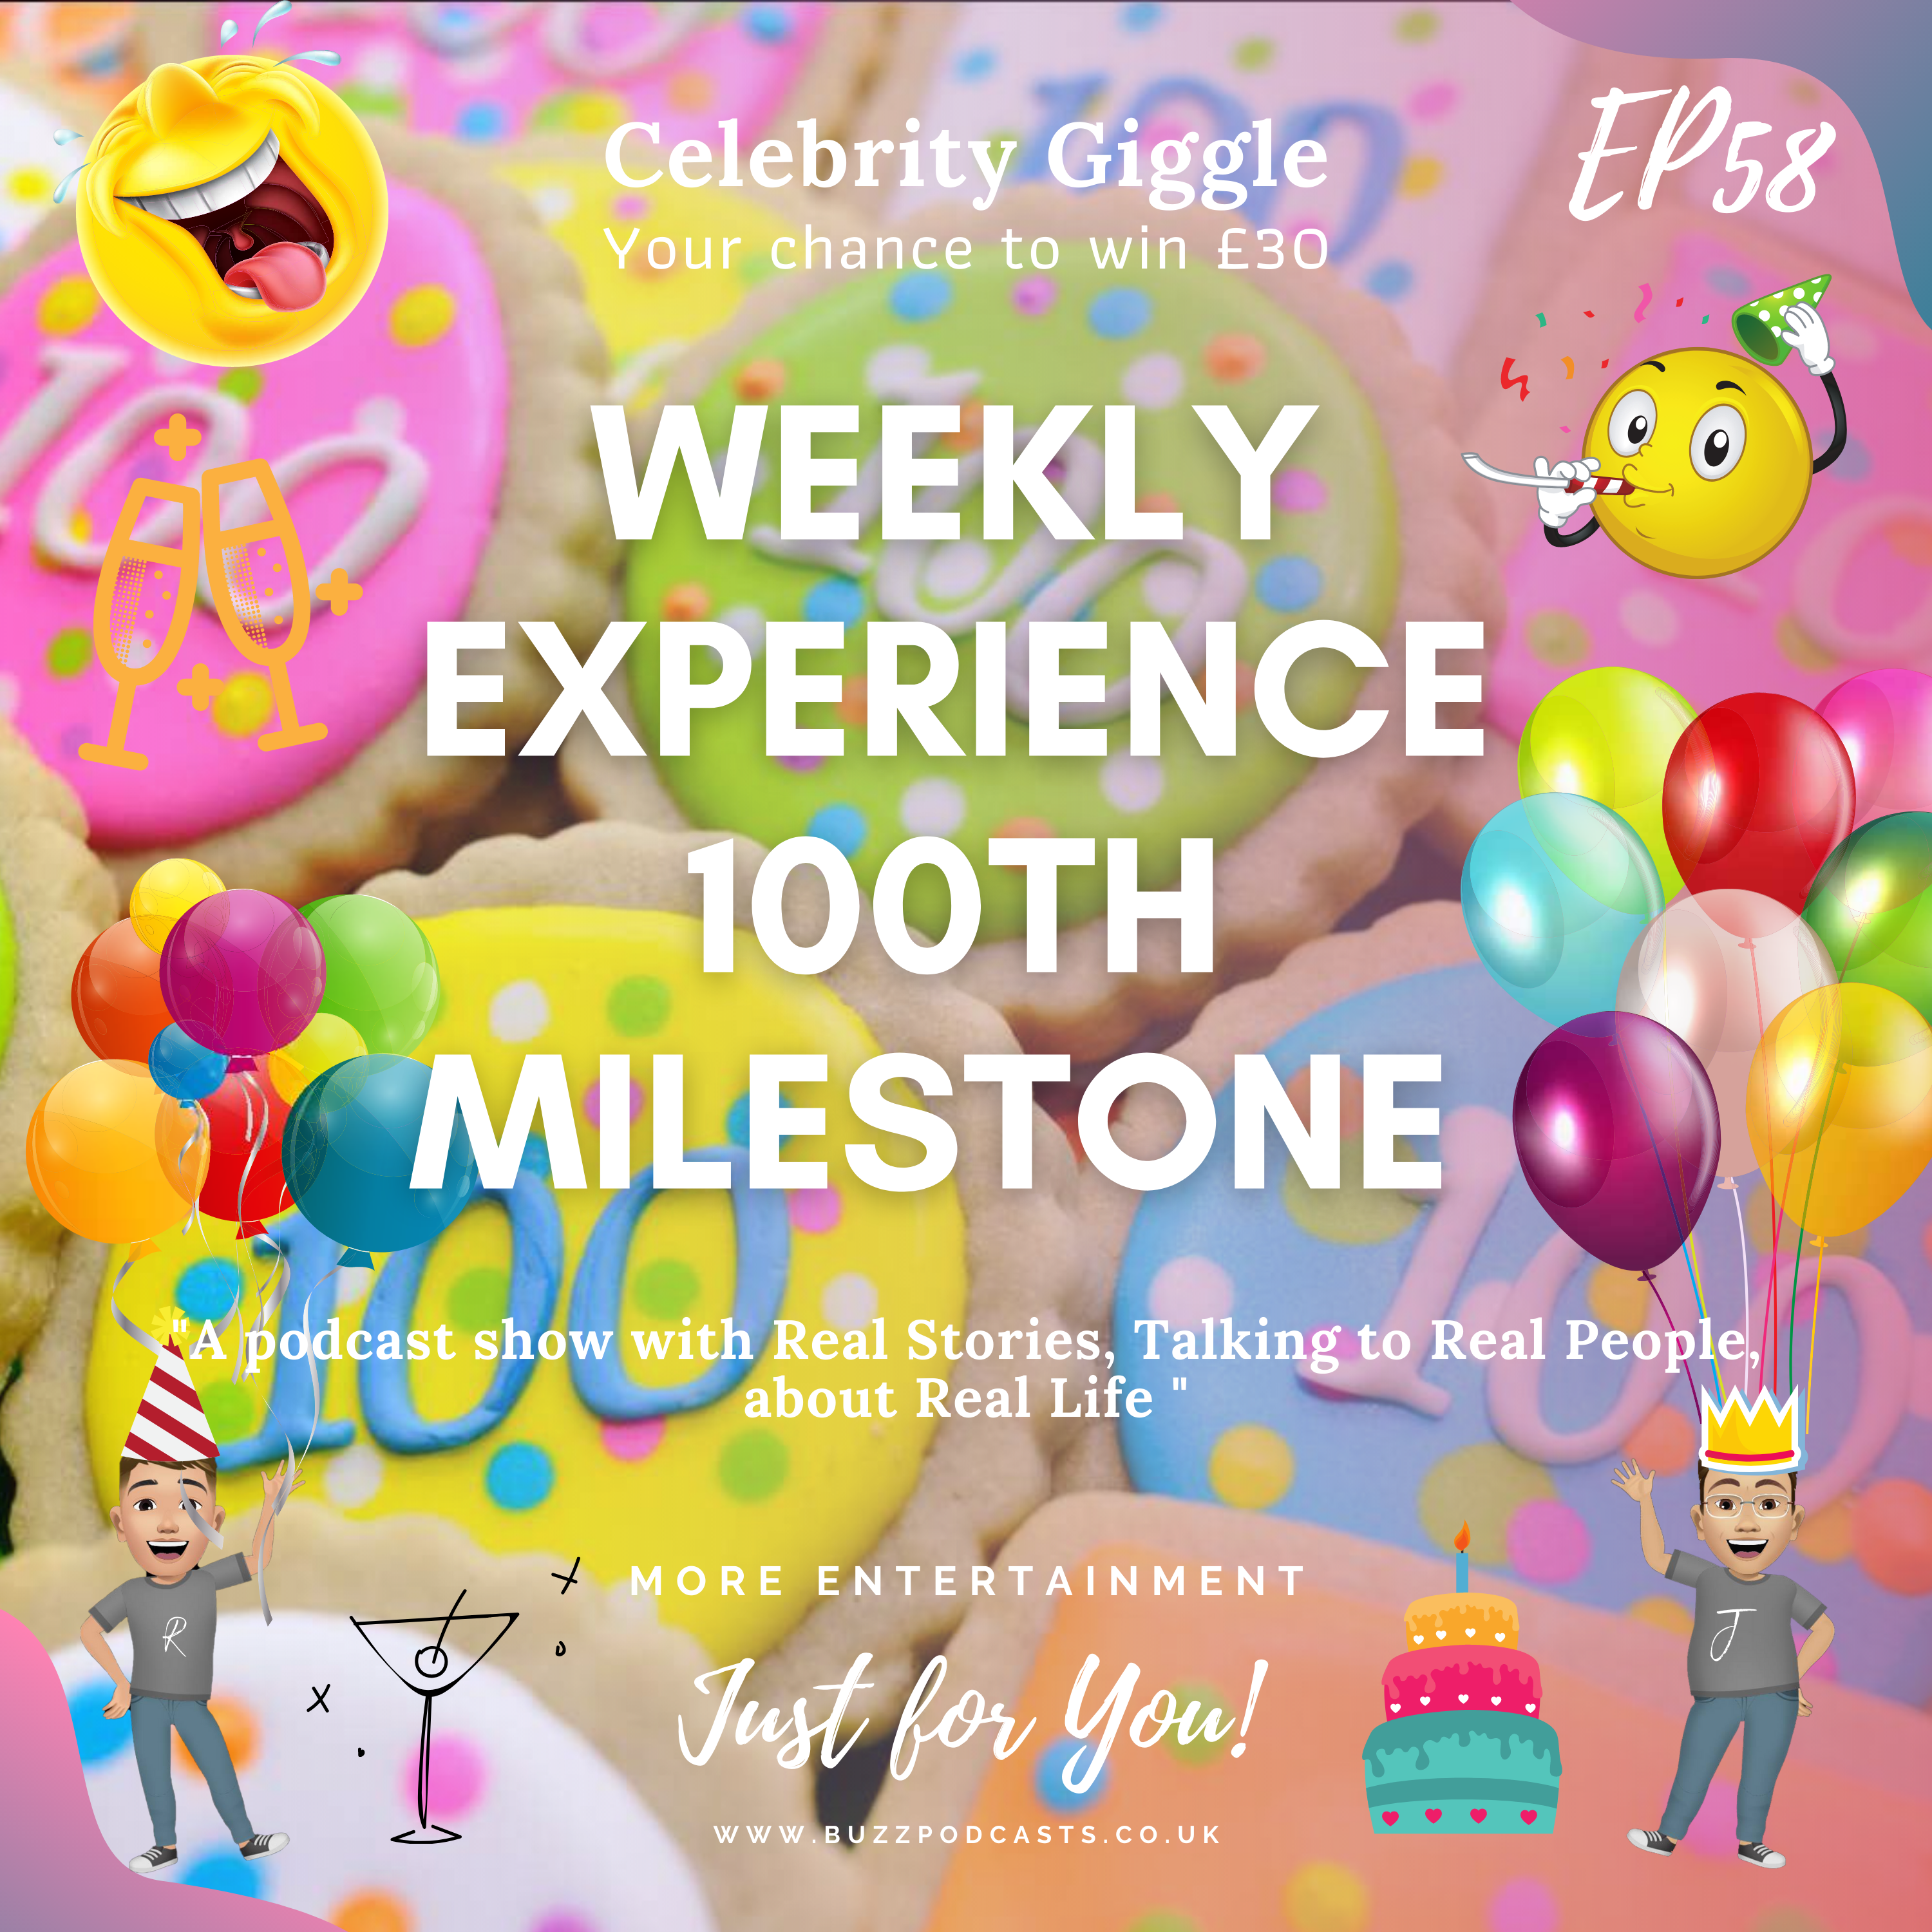 Weekly Experience 100th Milestone